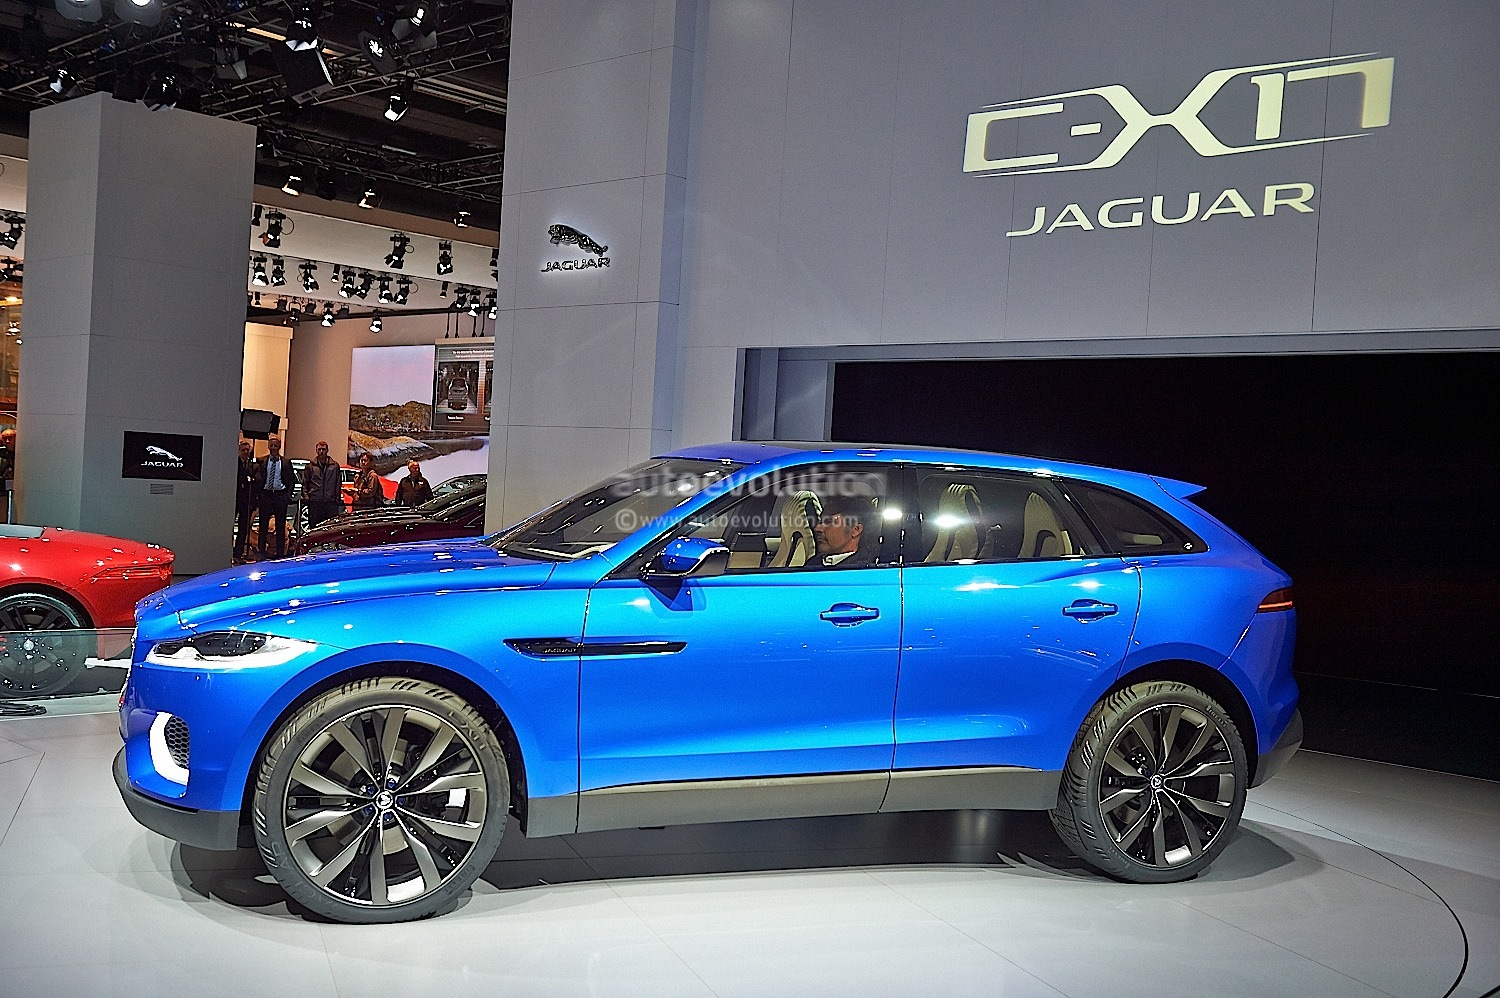 Jaguar F-PACE: Performance Crossover Name Revealed in Detroit, to Debut in 2016 - autoevolution